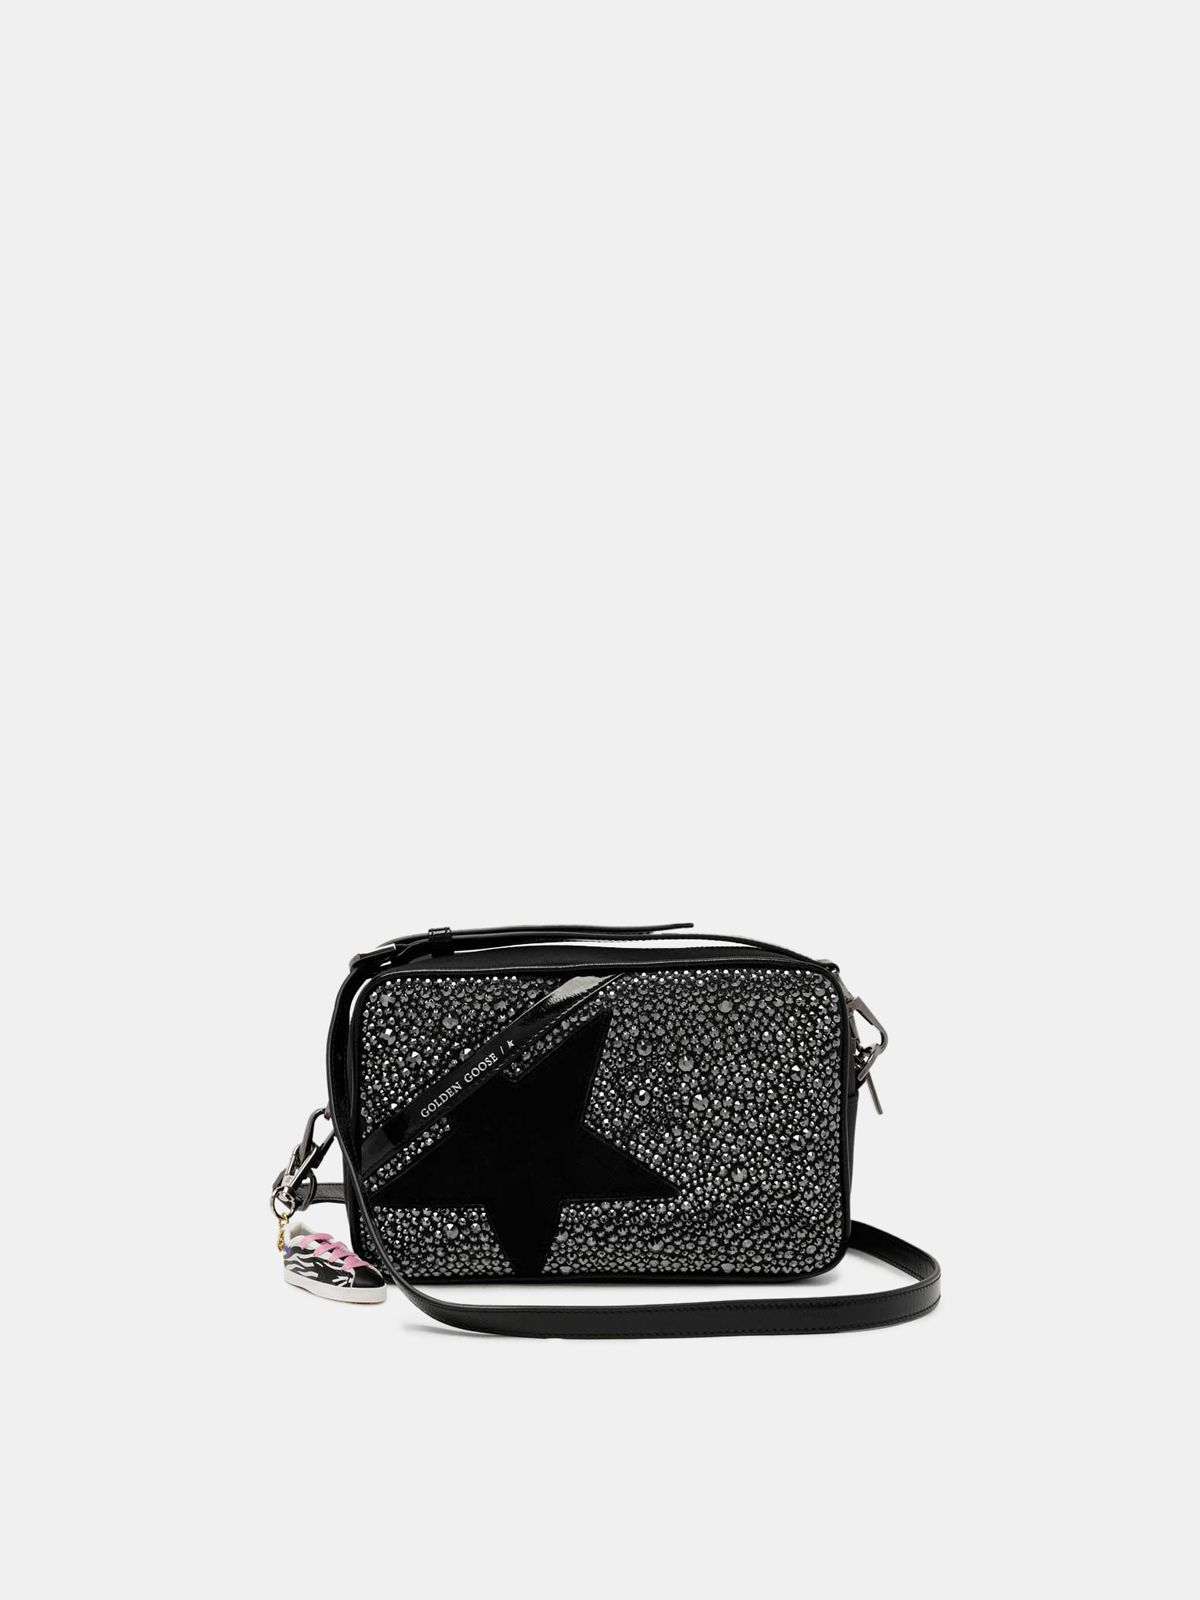 Black Star Bag with crystals